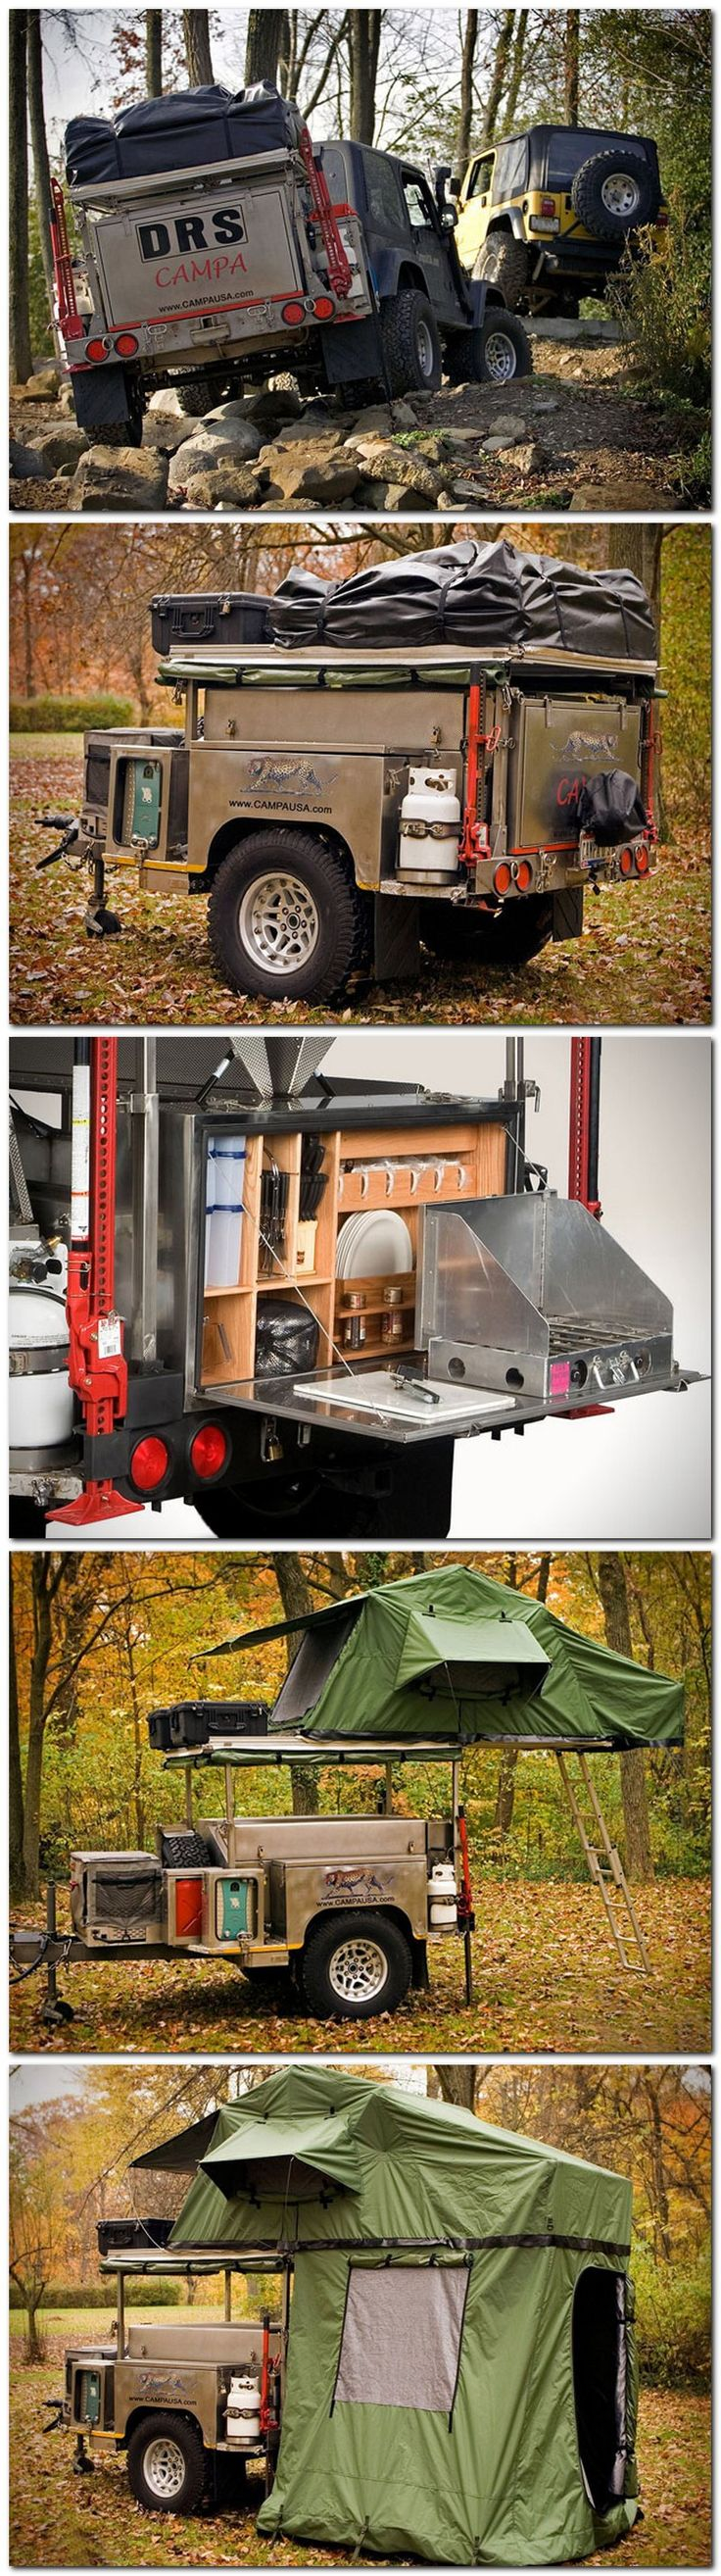 Interesting concept.  Could be an interesting add on to the Jeep.  All Terrain Camping Trailer by Campa USA